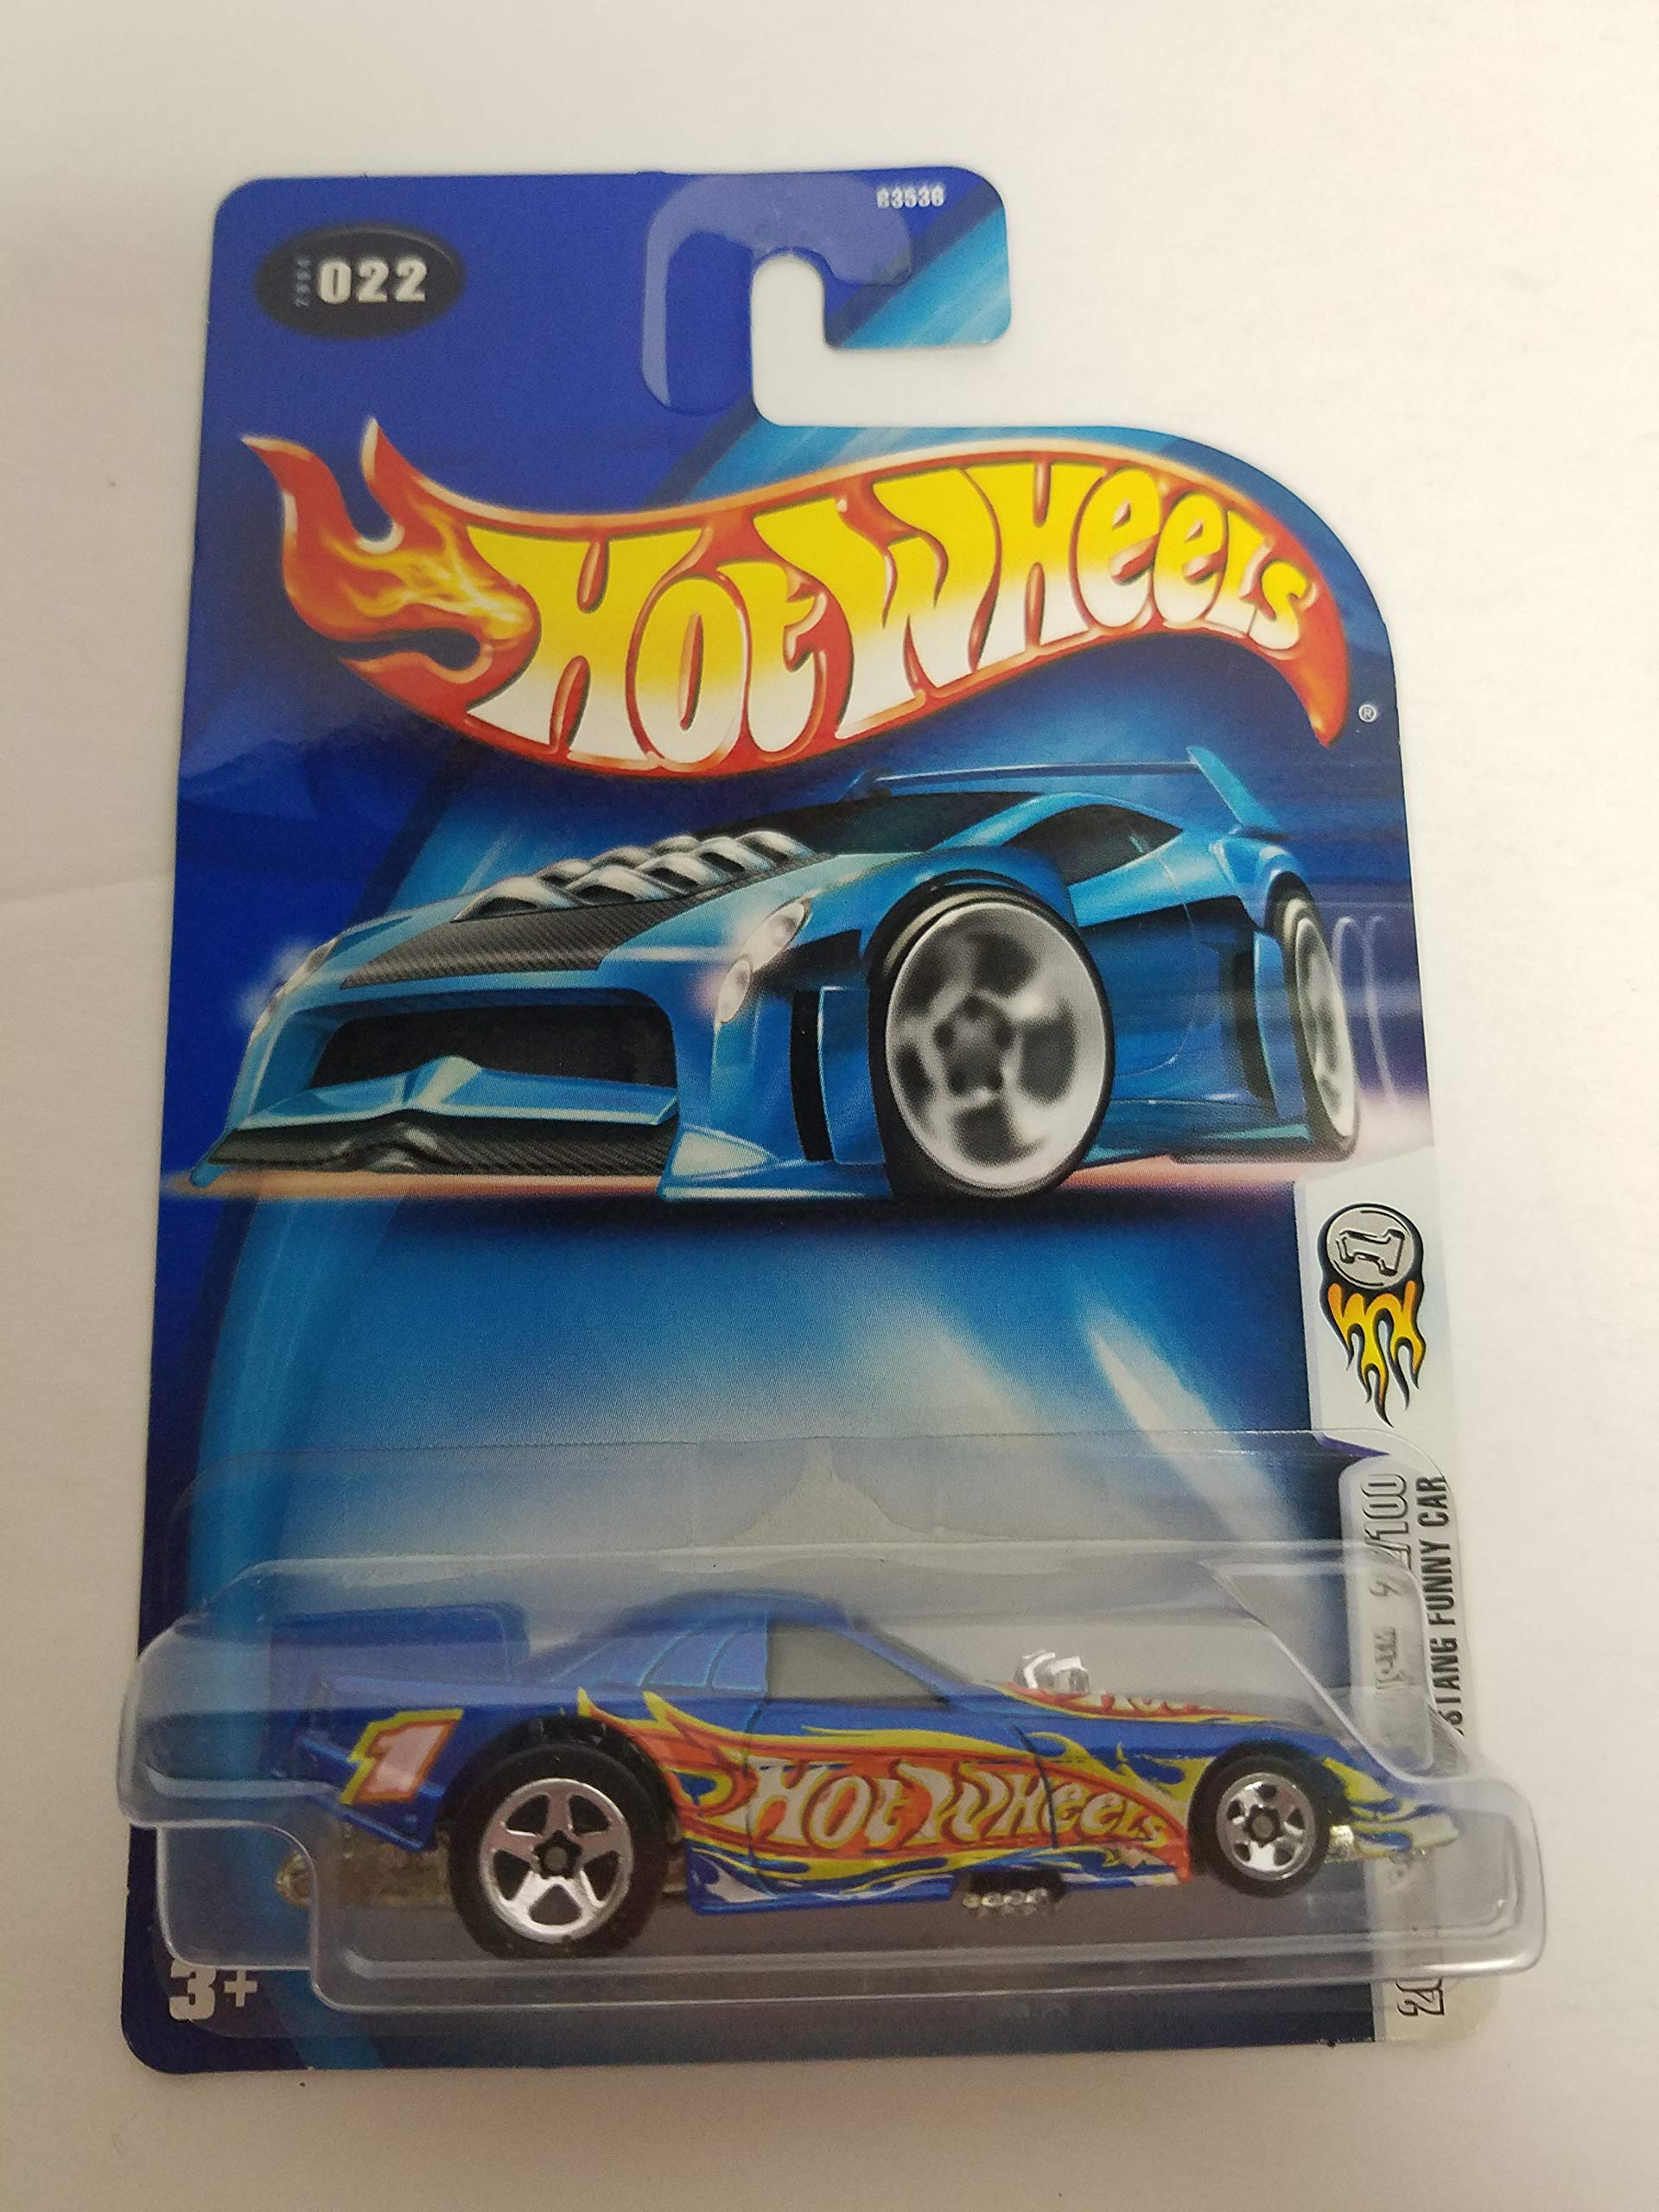 Mustang Funny Car Blue Color 2004 First Editions 22/100 Hot Wheels Diecast Car No. 022